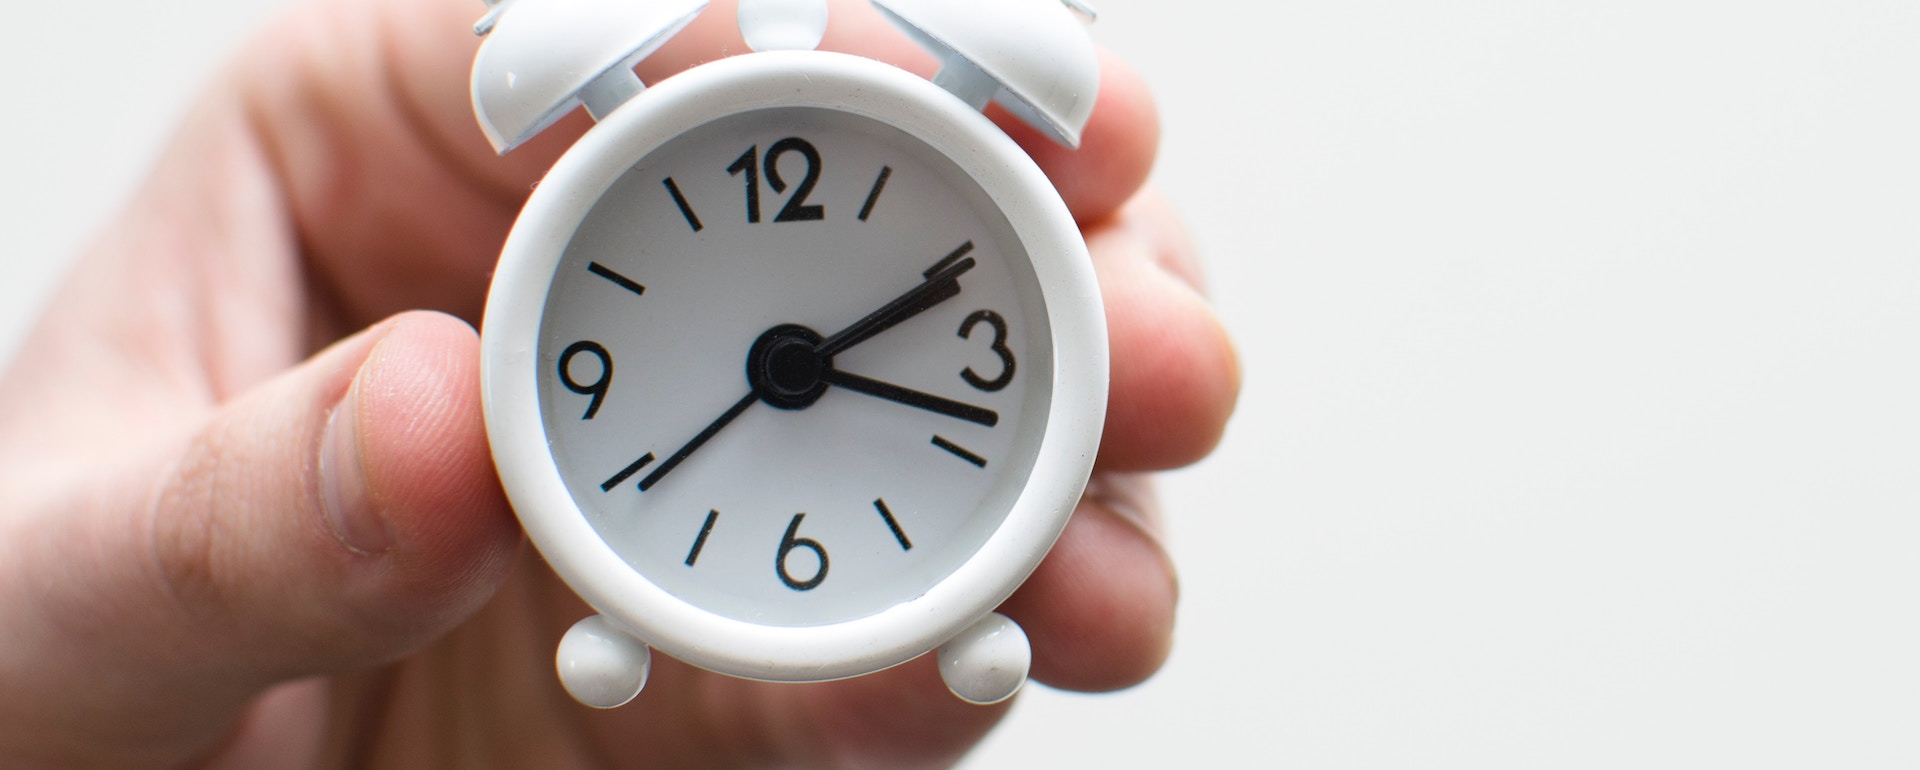 How to Manage Time Wisely at Work